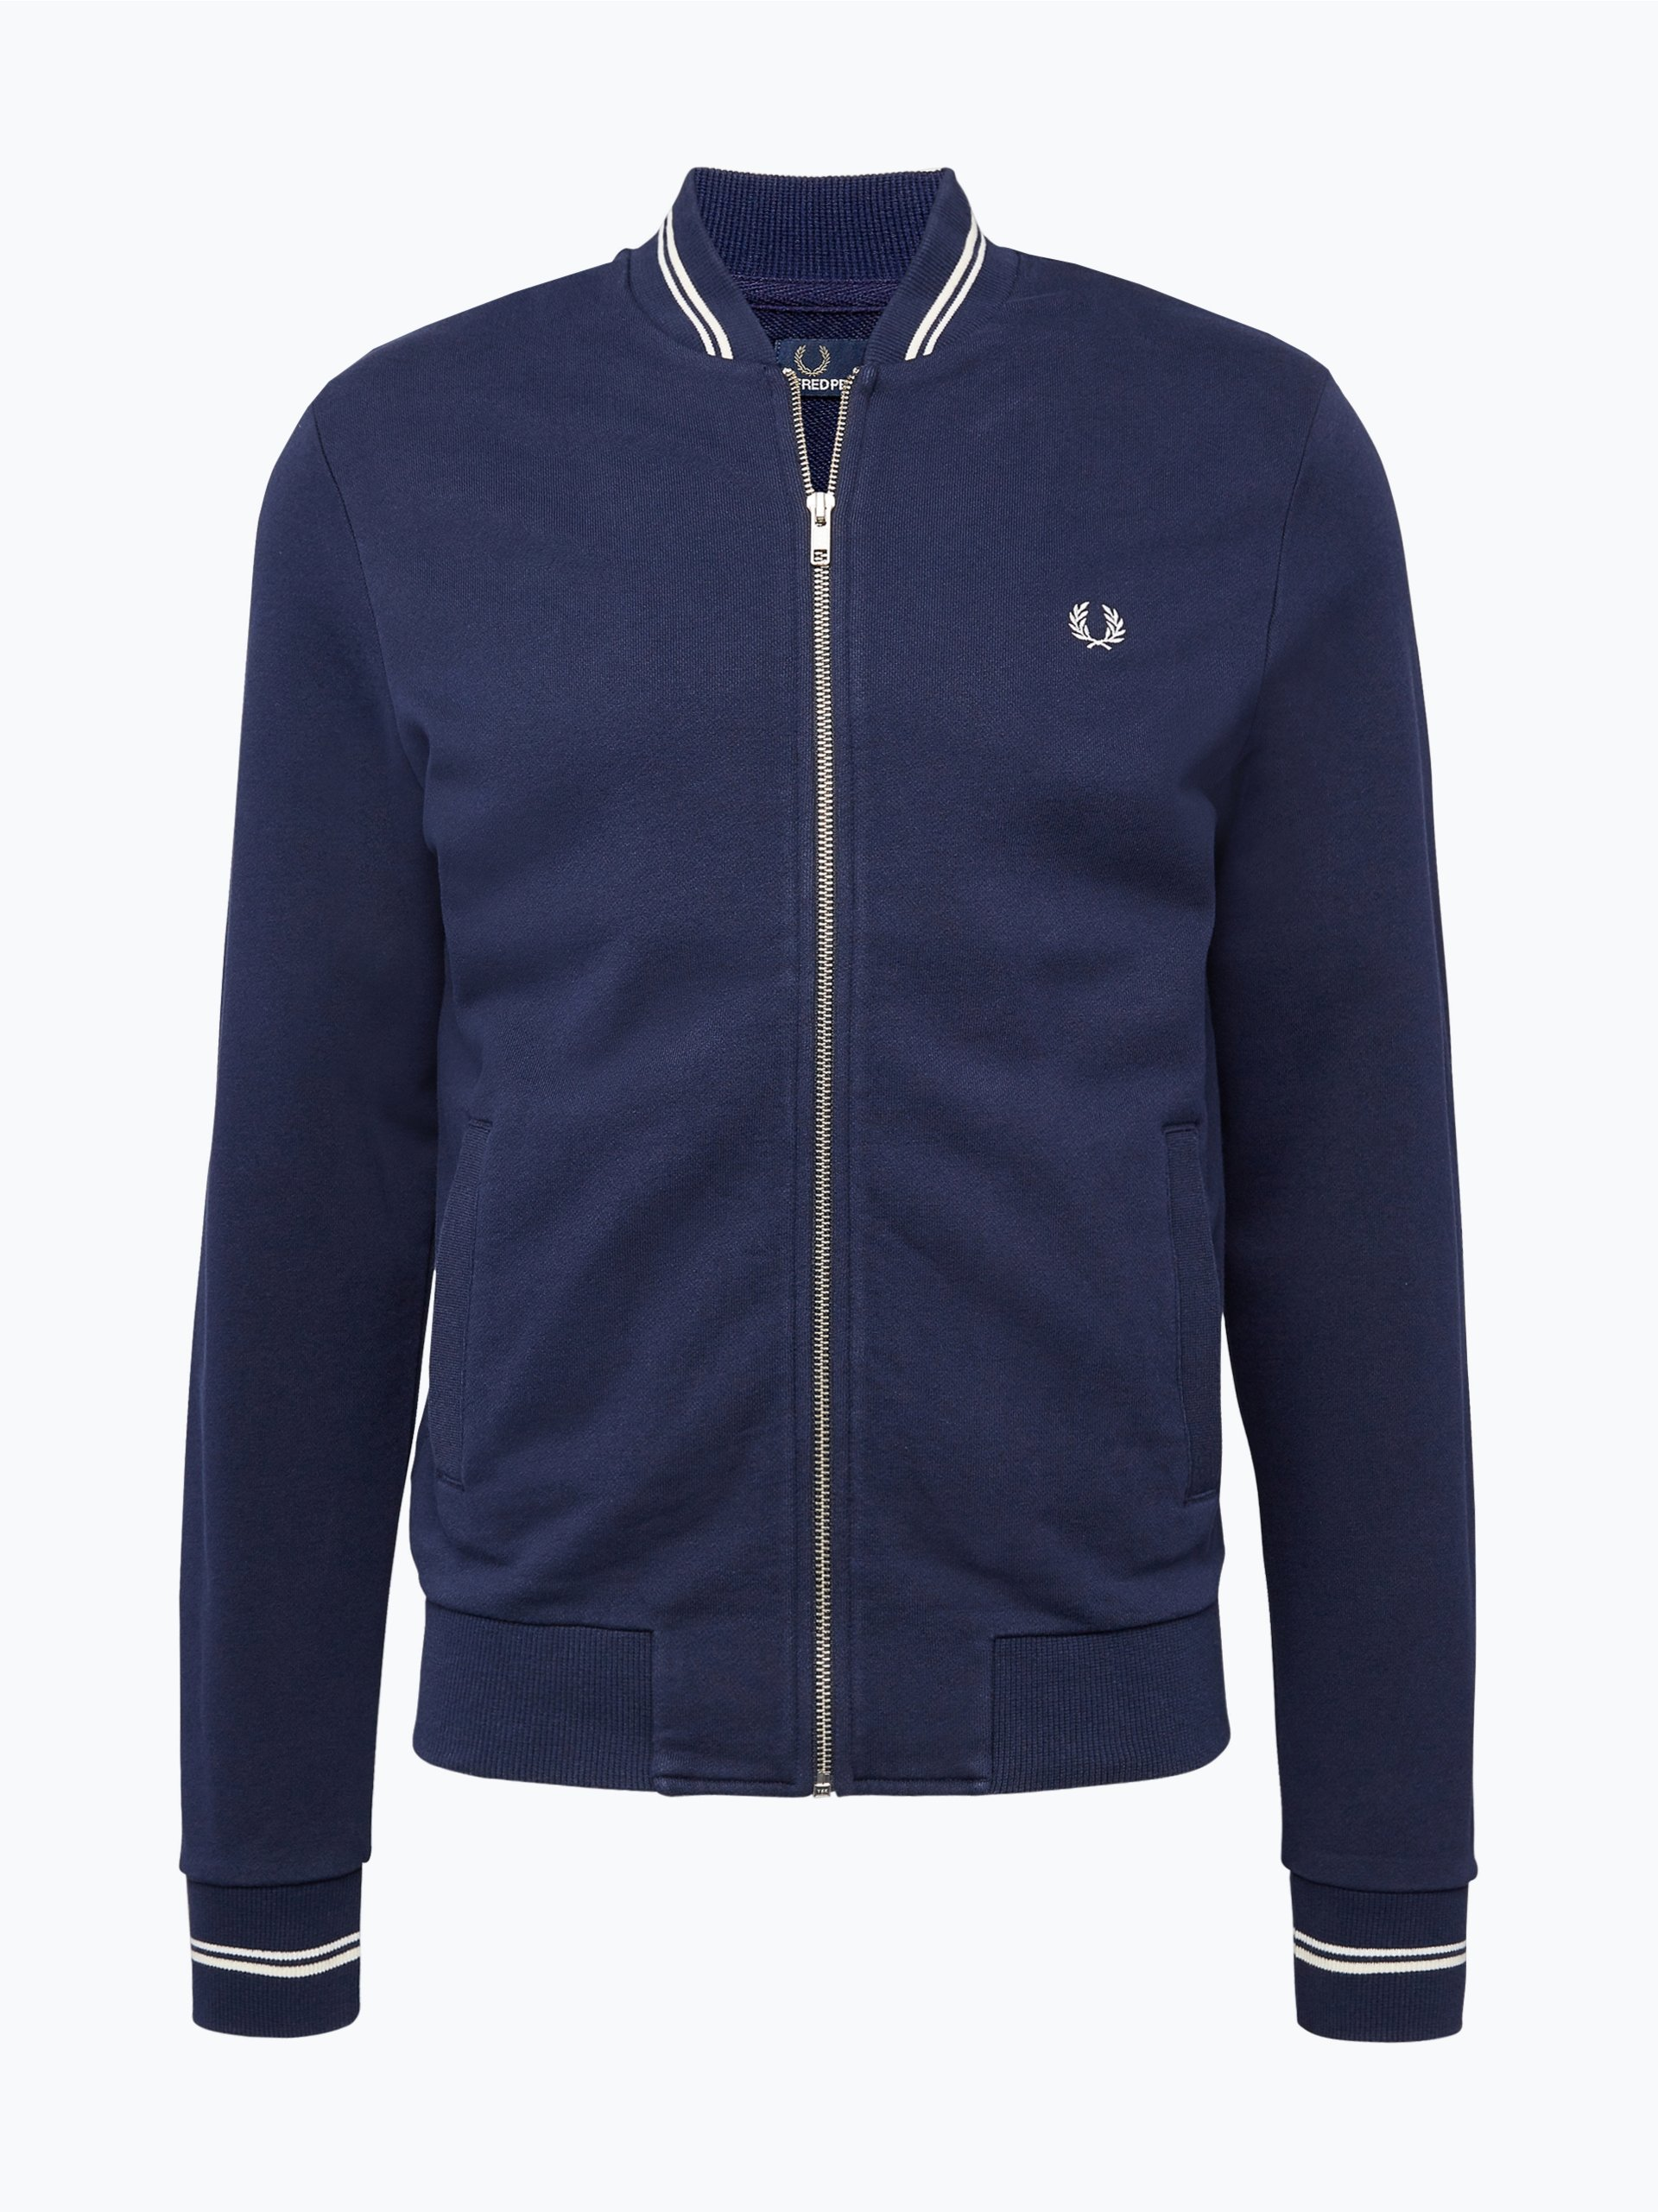 fred perry herren sweatjacke indigo uni online kaufen peek und. Black Bedroom Furniture Sets. Home Design Ideas